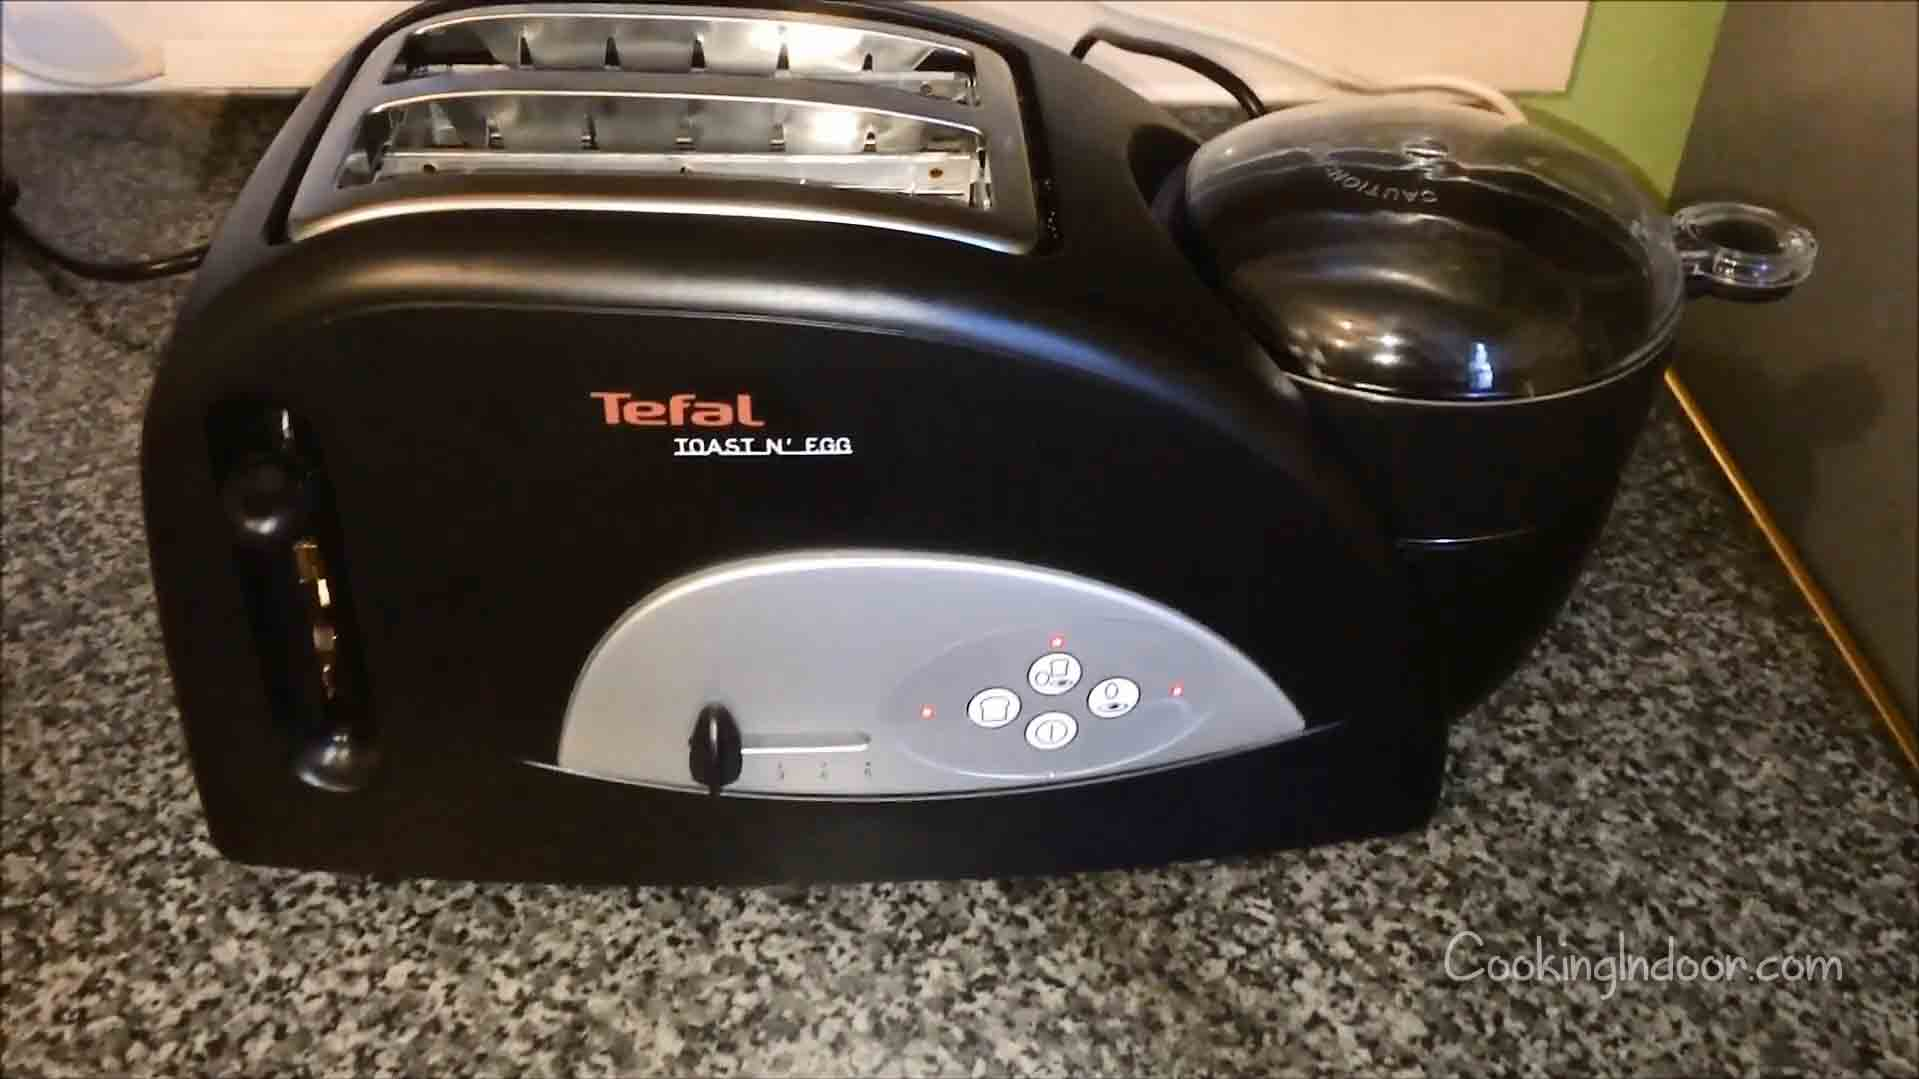 Best toaster with egg poacher